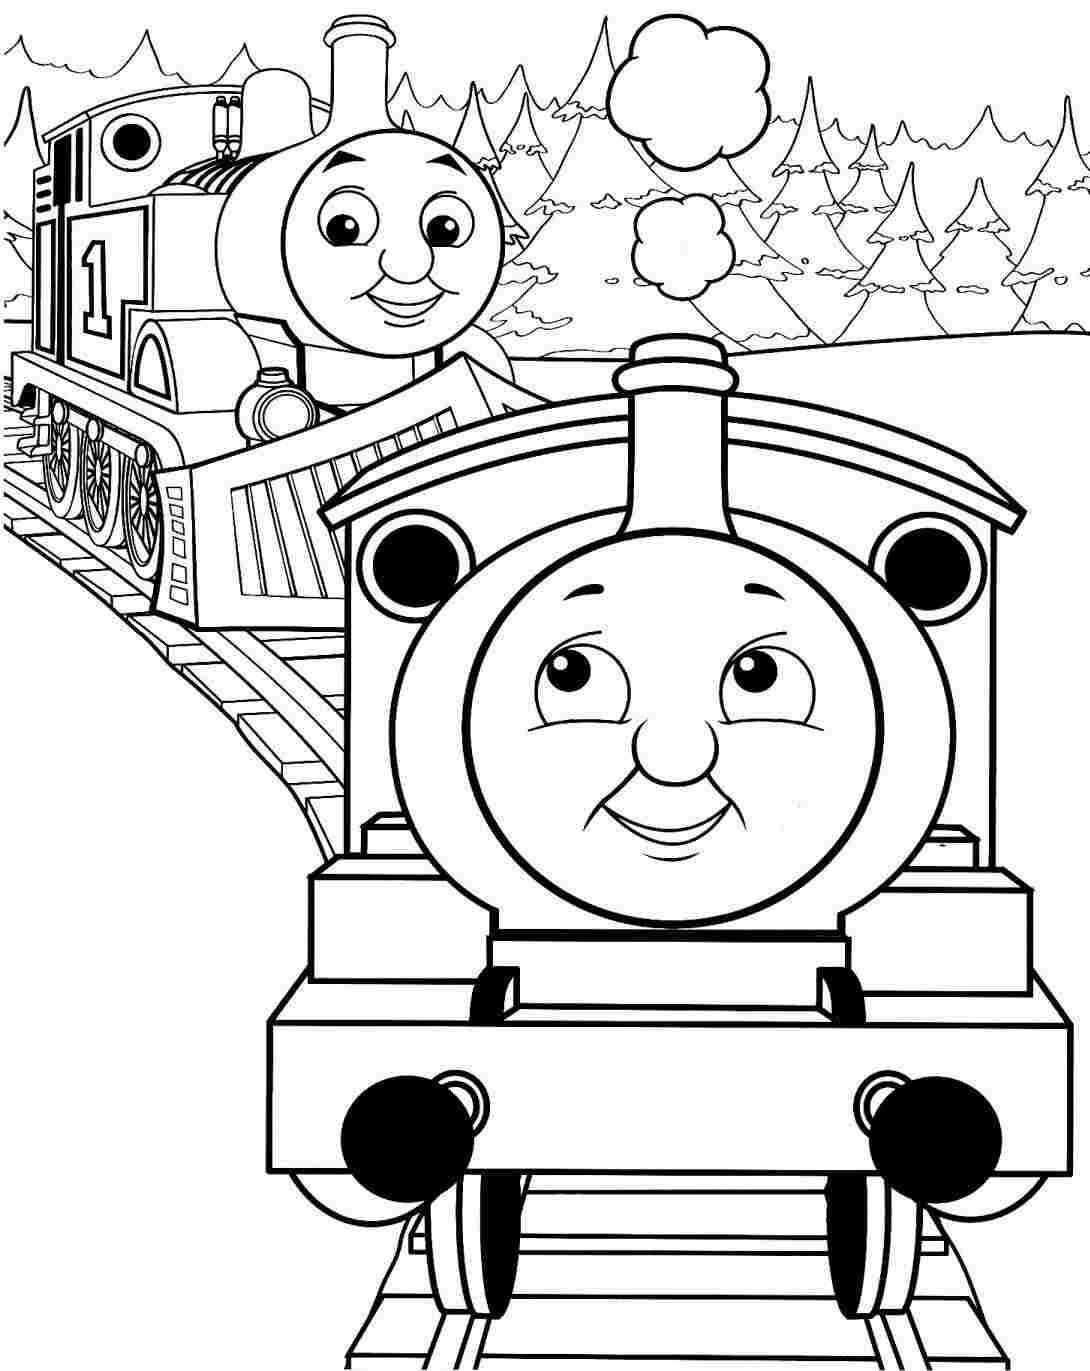 thomas and friends coloring pages thomas and friends coloring pages coloring pages to thomas and coloring pages friends